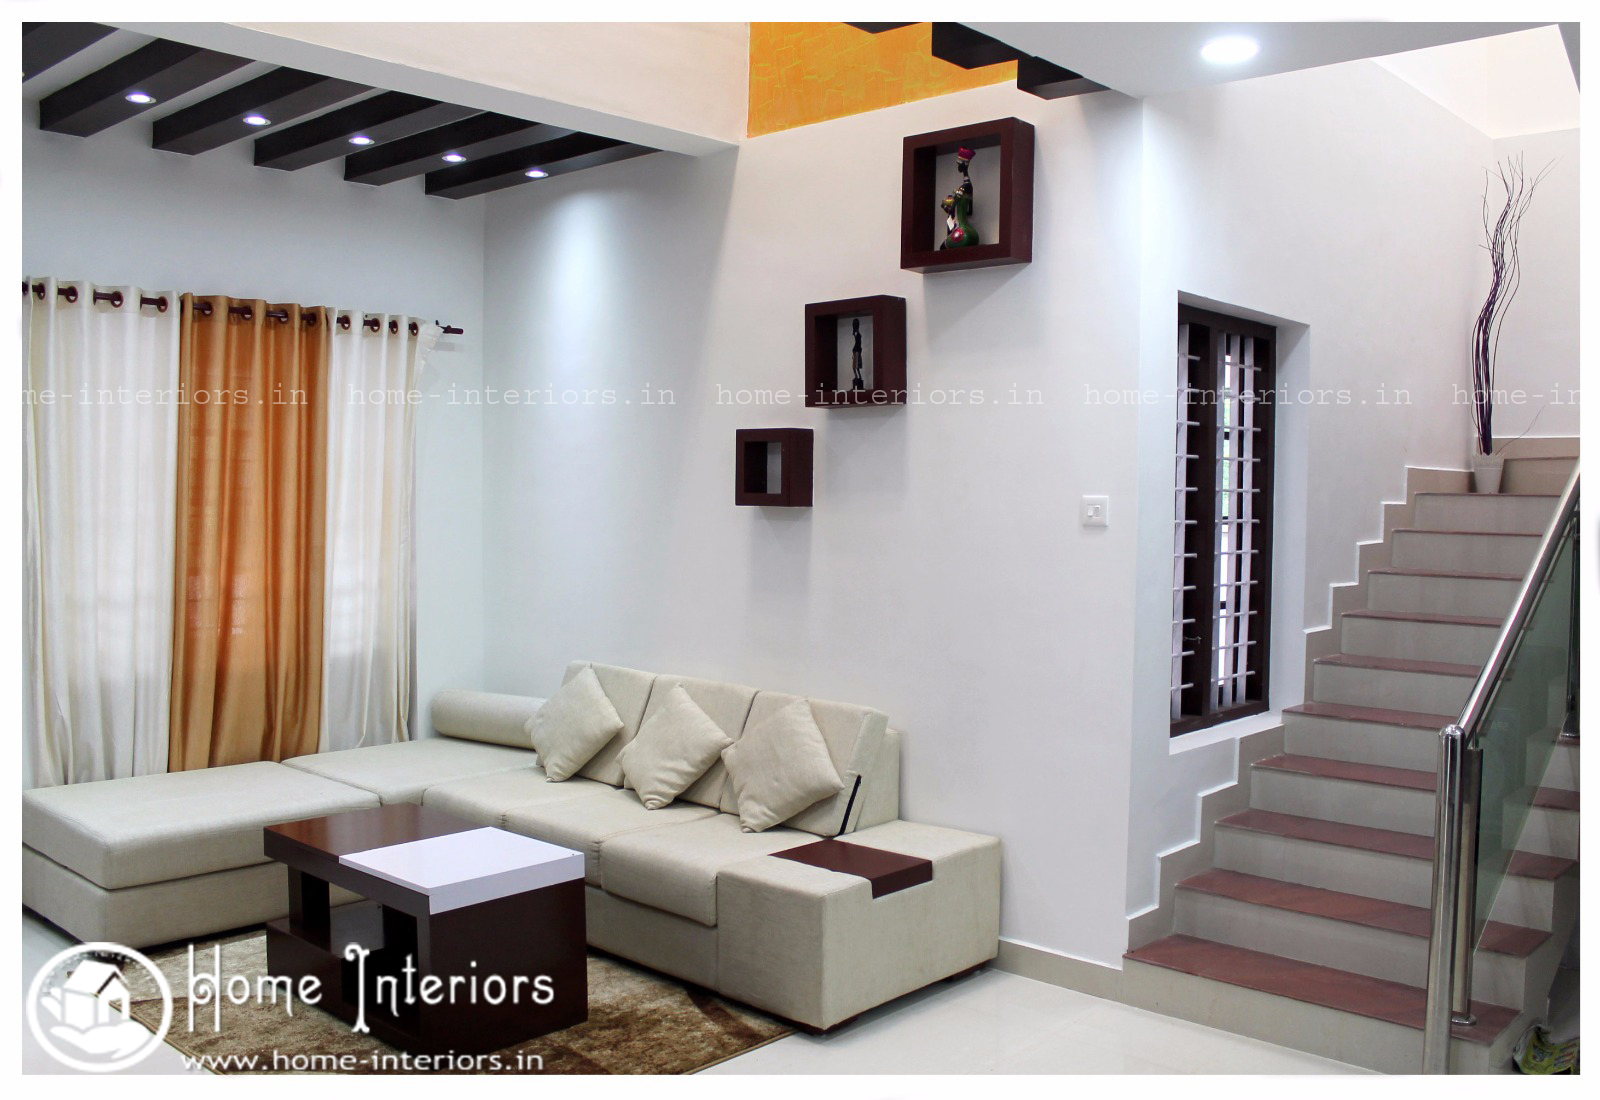 2350 Square Feet Incredible And Marvellous Kerala Home Living Interior  Design